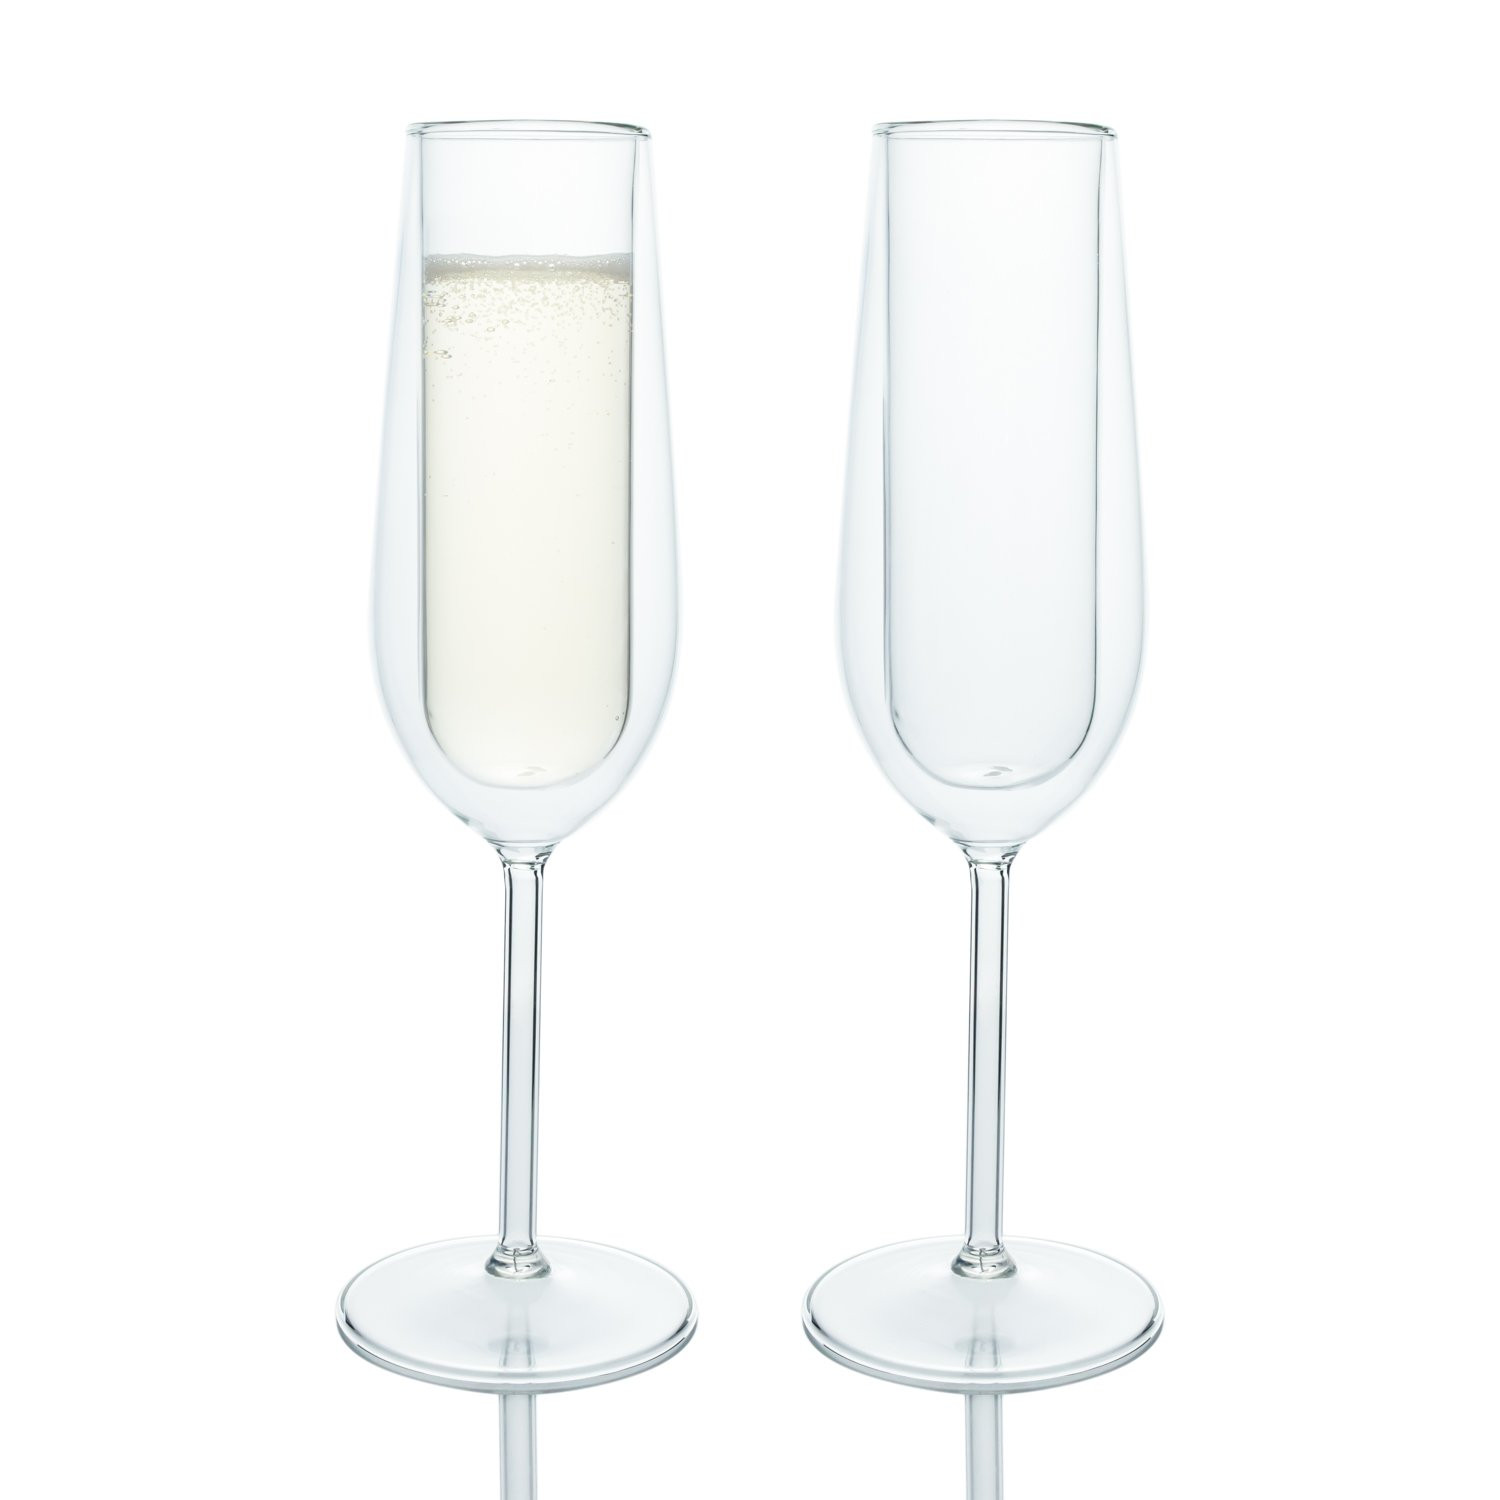 Elegant Classic Double Wall Champagne Flutes Glass, Set of 2, Special Occasions Toasting Wedding Engagement Party Verre Collection